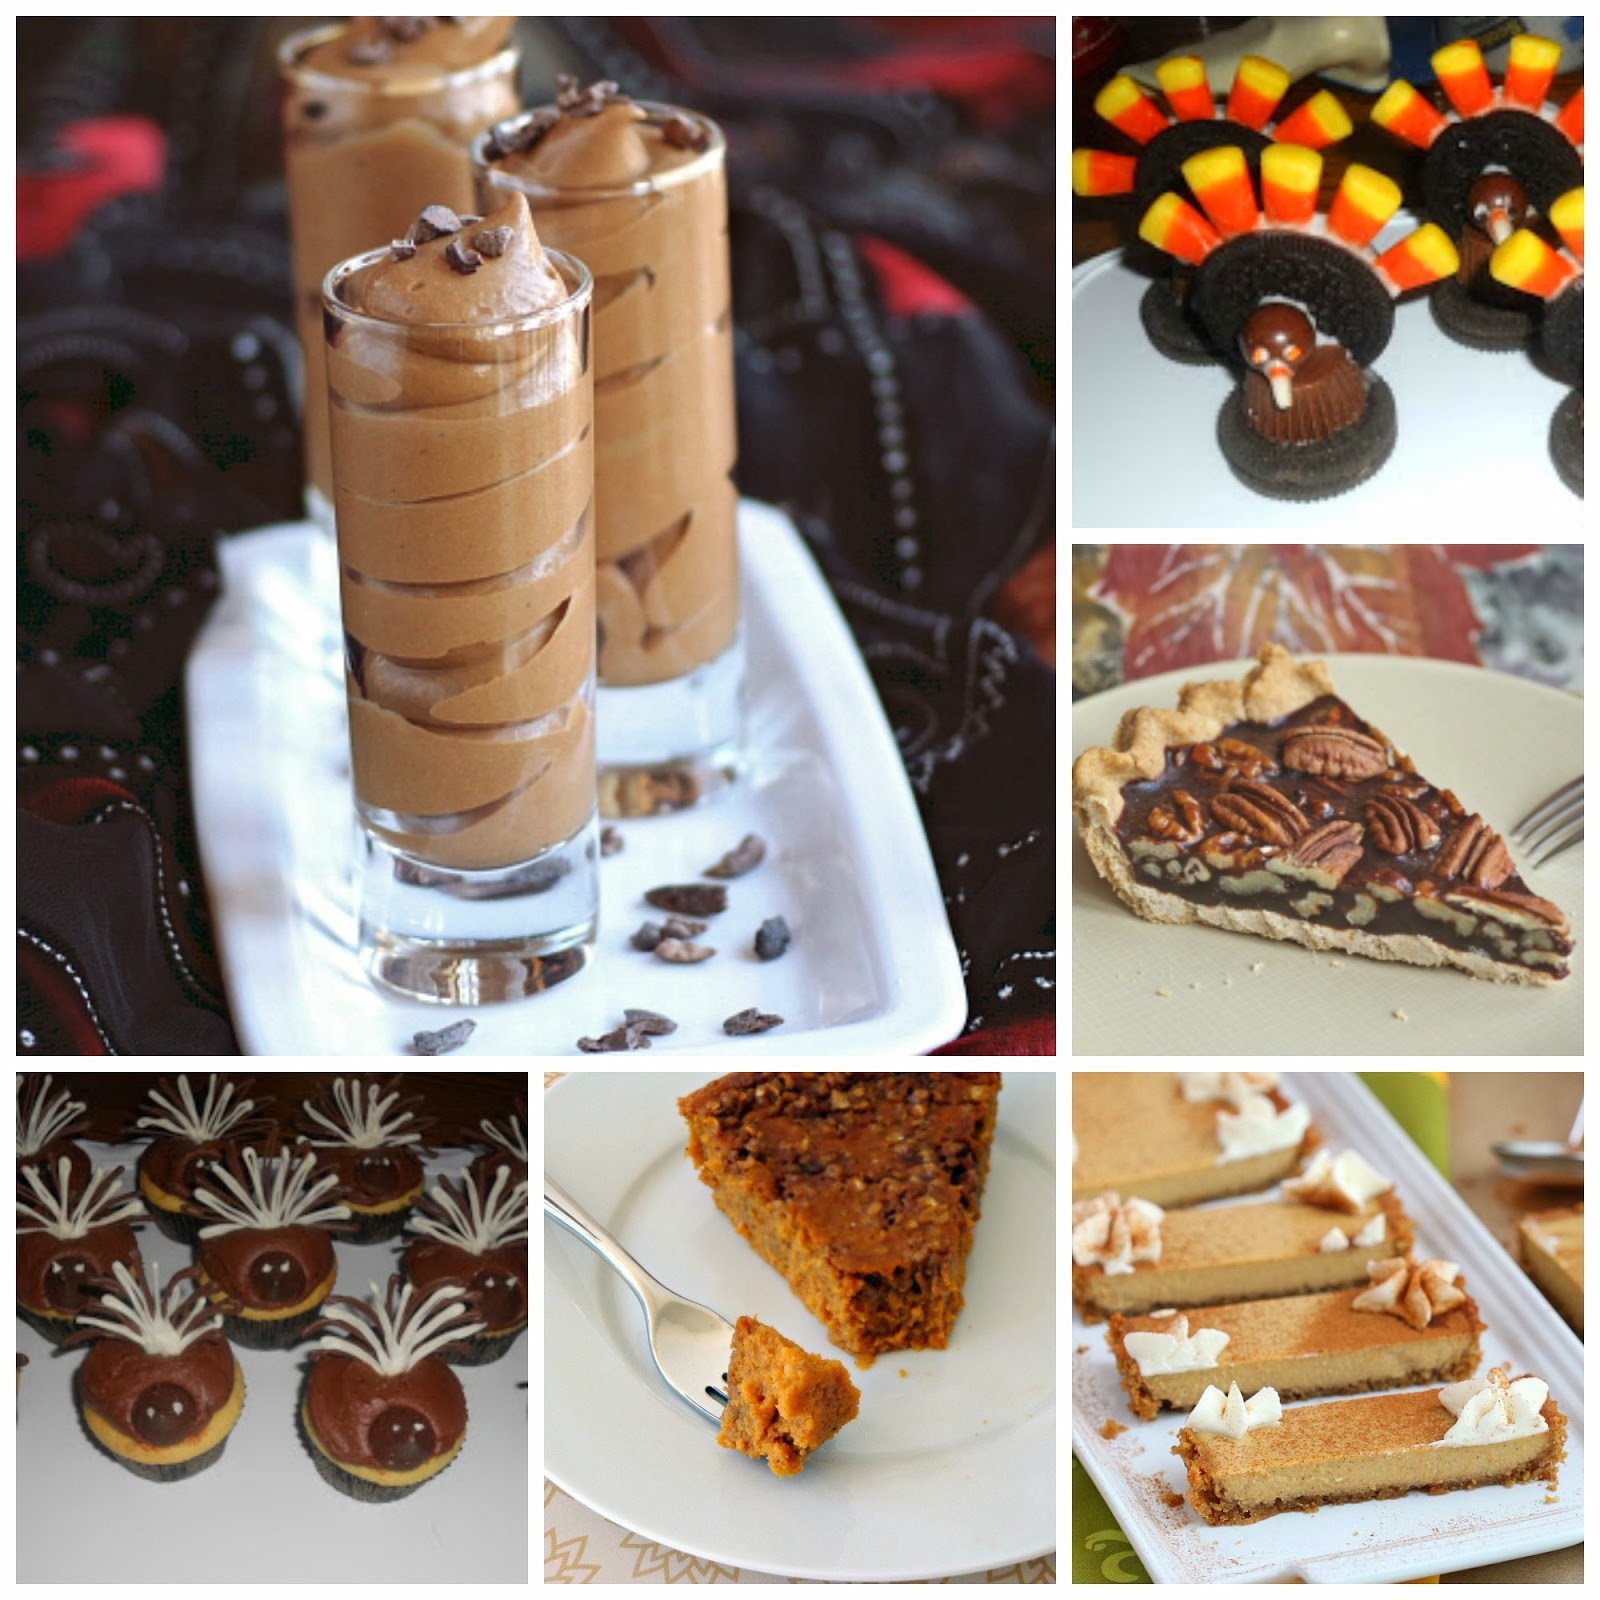 Thanksgiving Desserts Ideas  75 Recipes for Thanksgiving Hezzi D s Books and Cooks